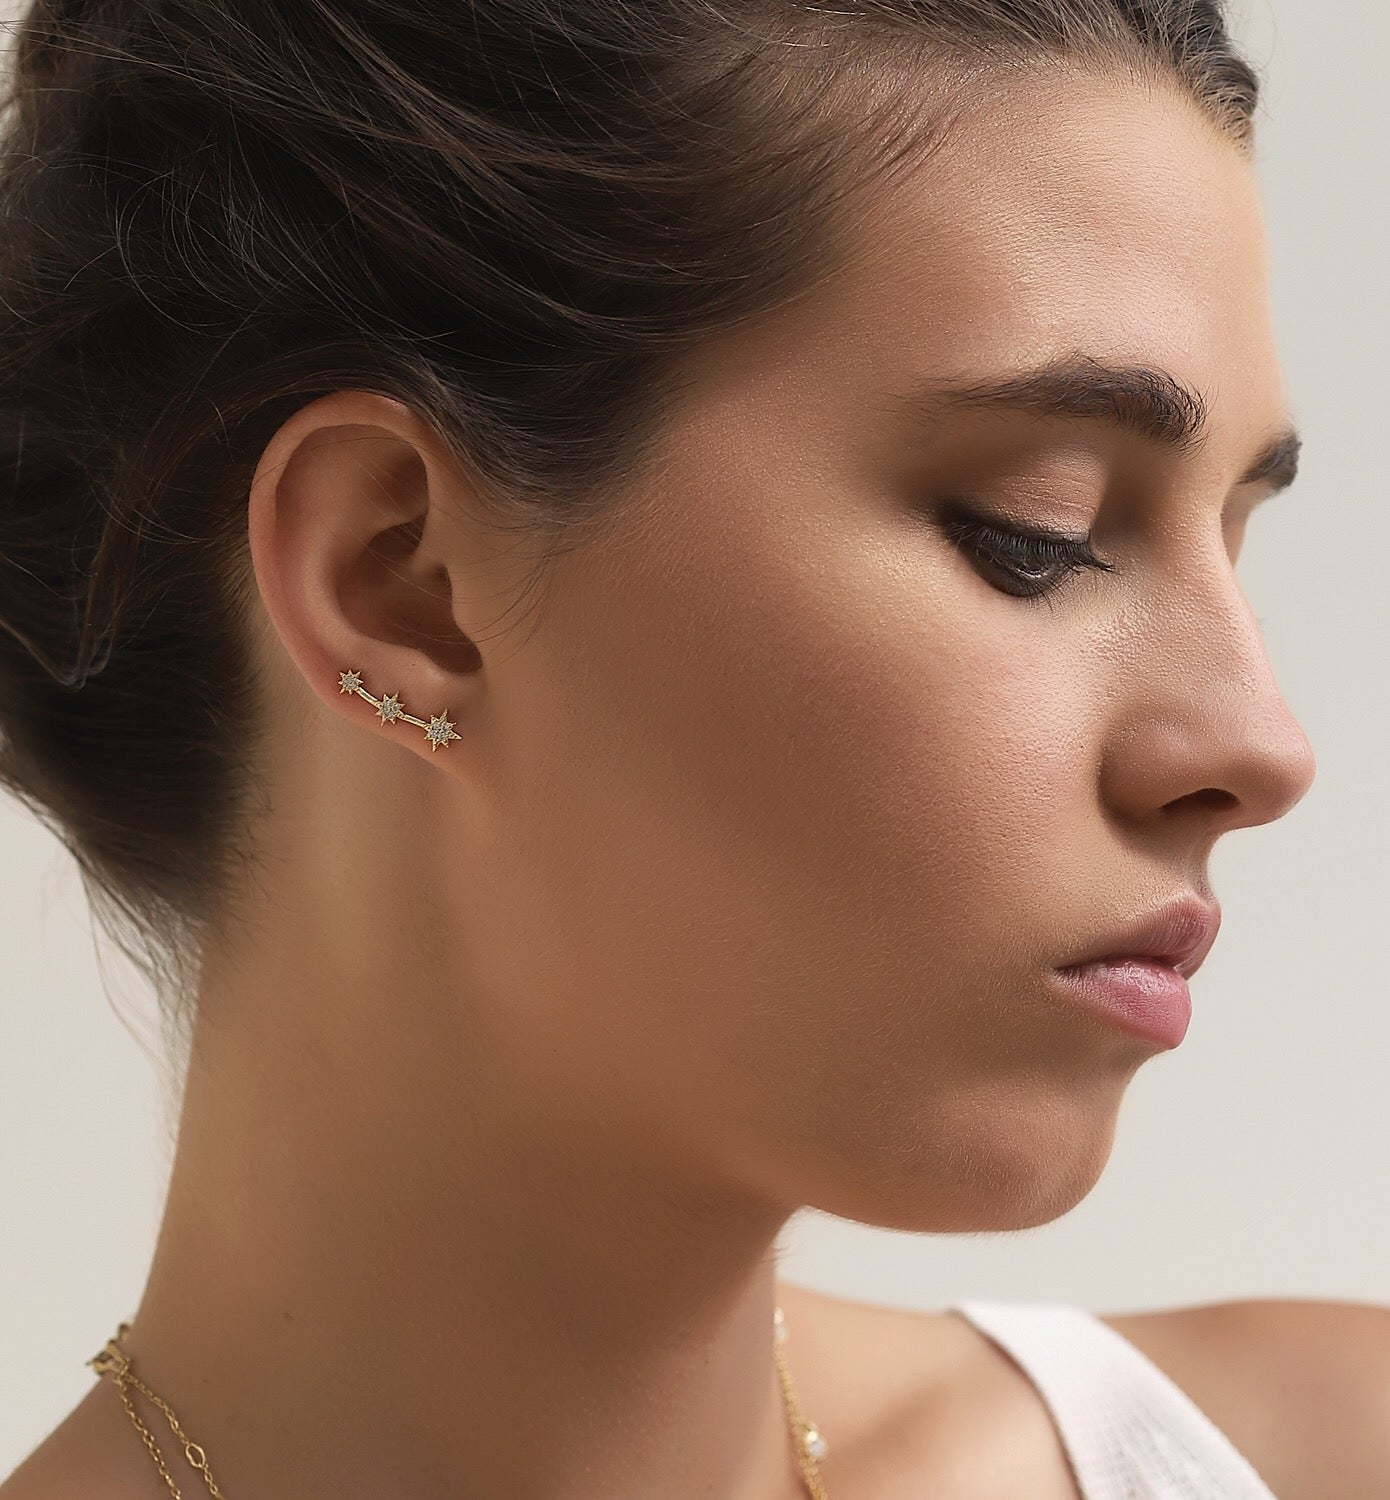 Shooting Star Ear Climber Earrings, Earrings - AMY O. Jewelry